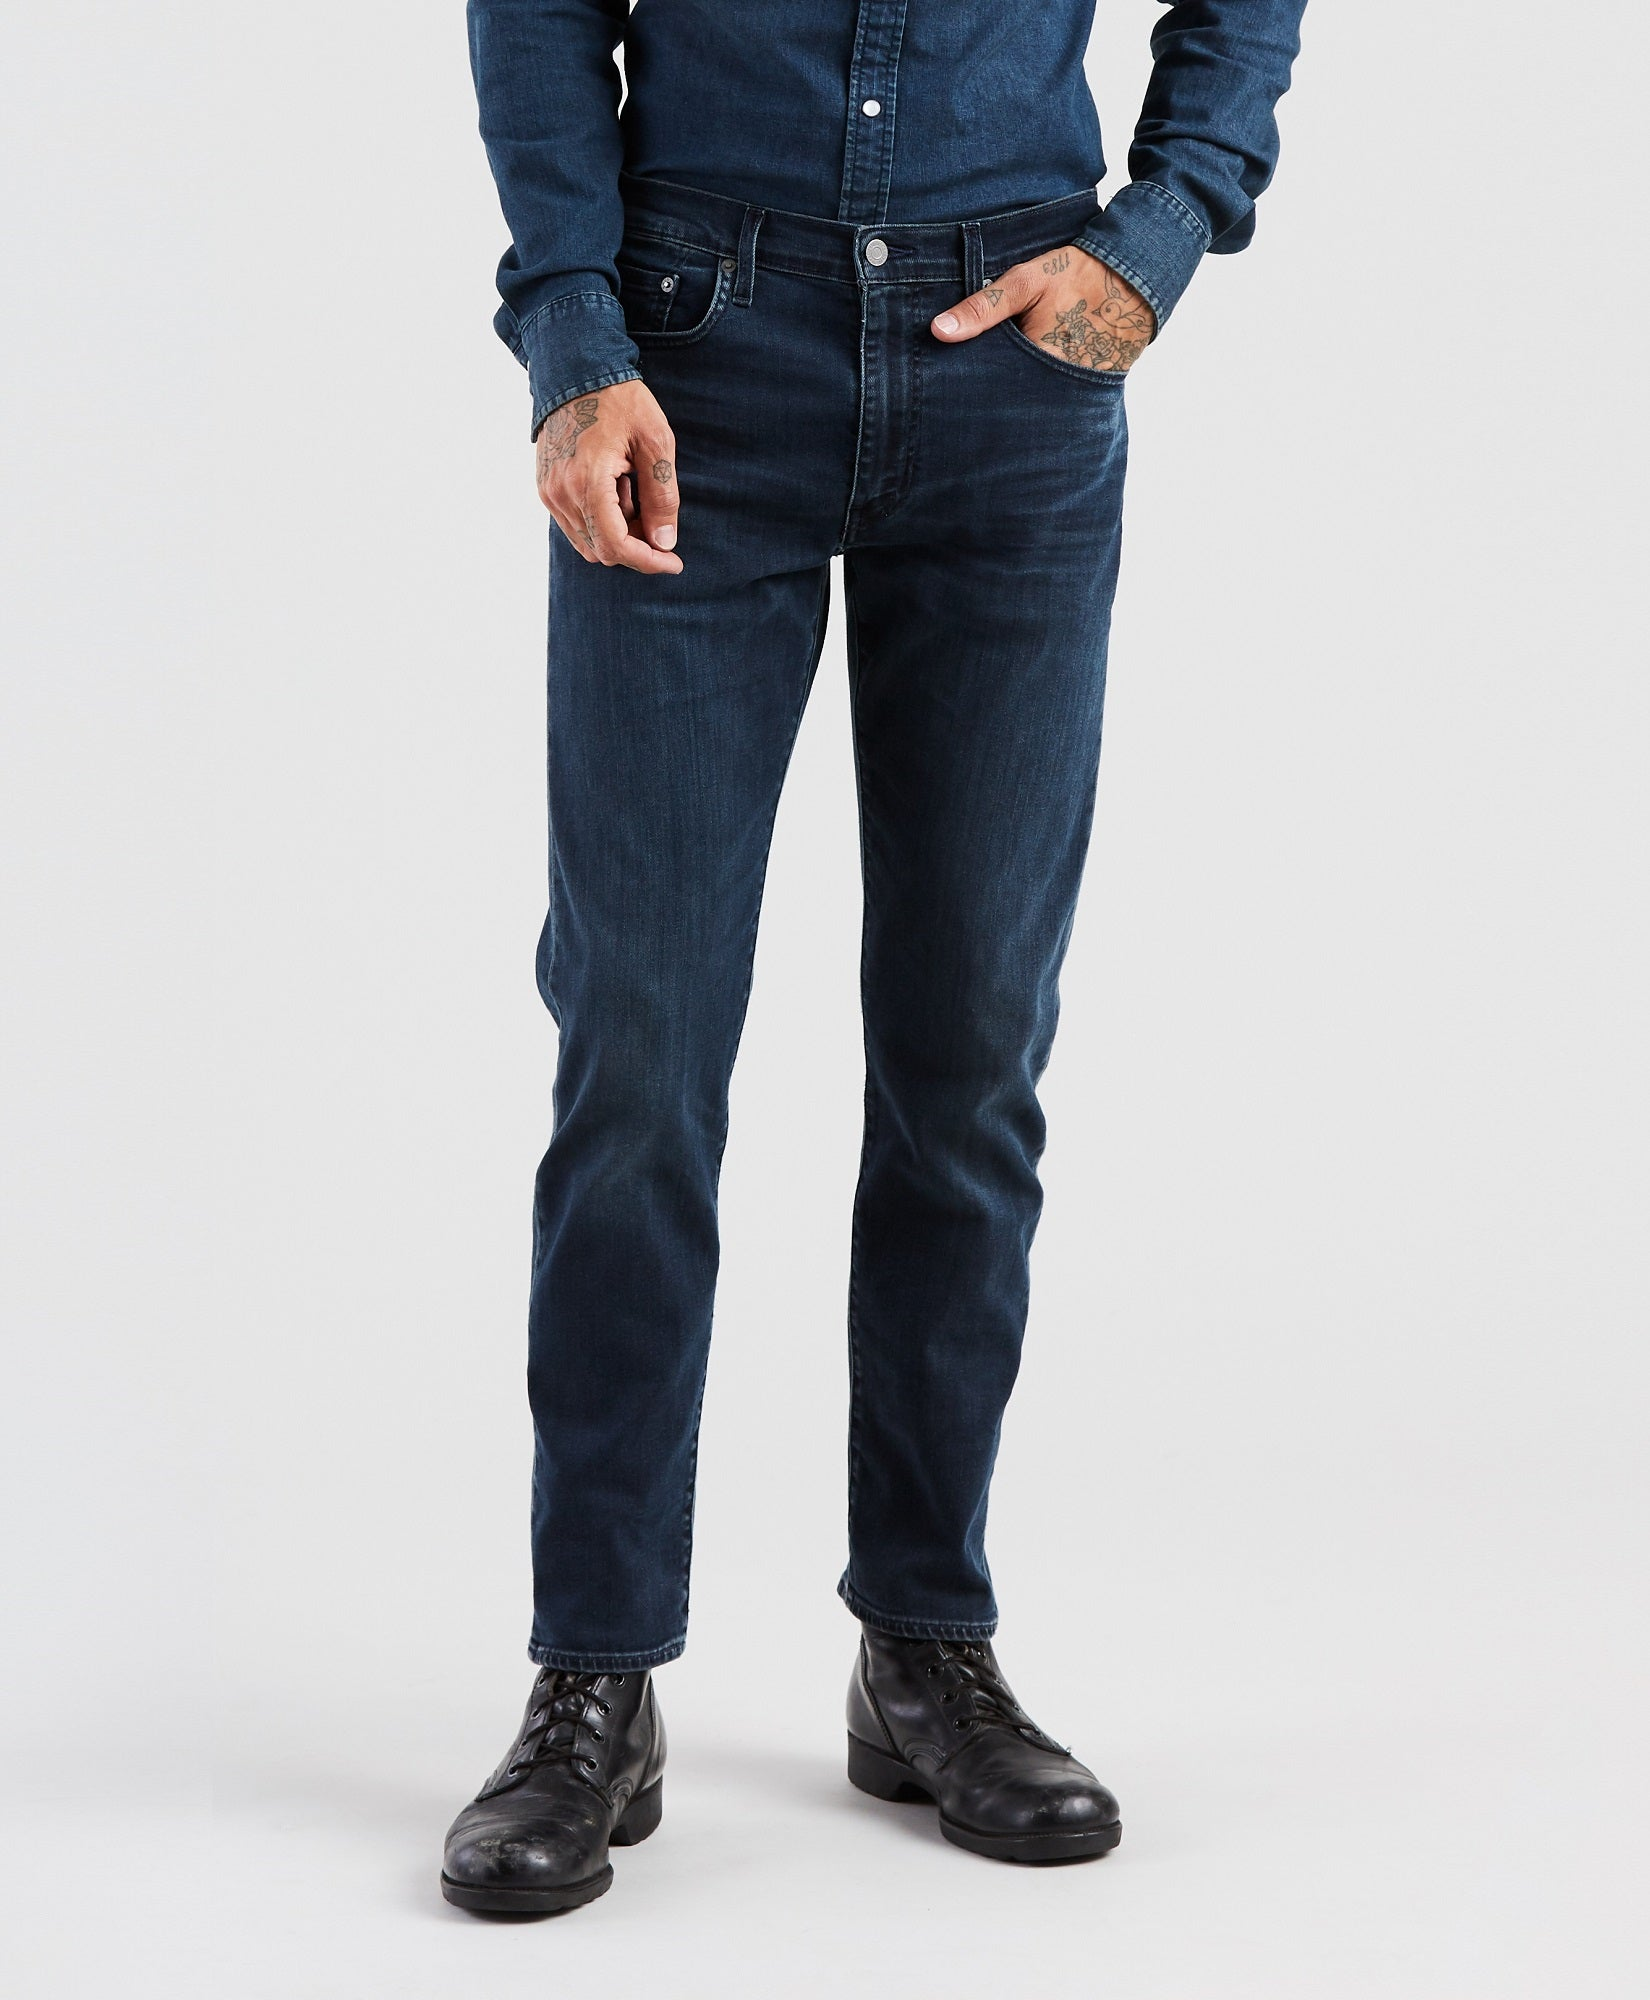 47647d14cb0 Levis 502 Regular Taper Jeans - Headed South | Country Attire